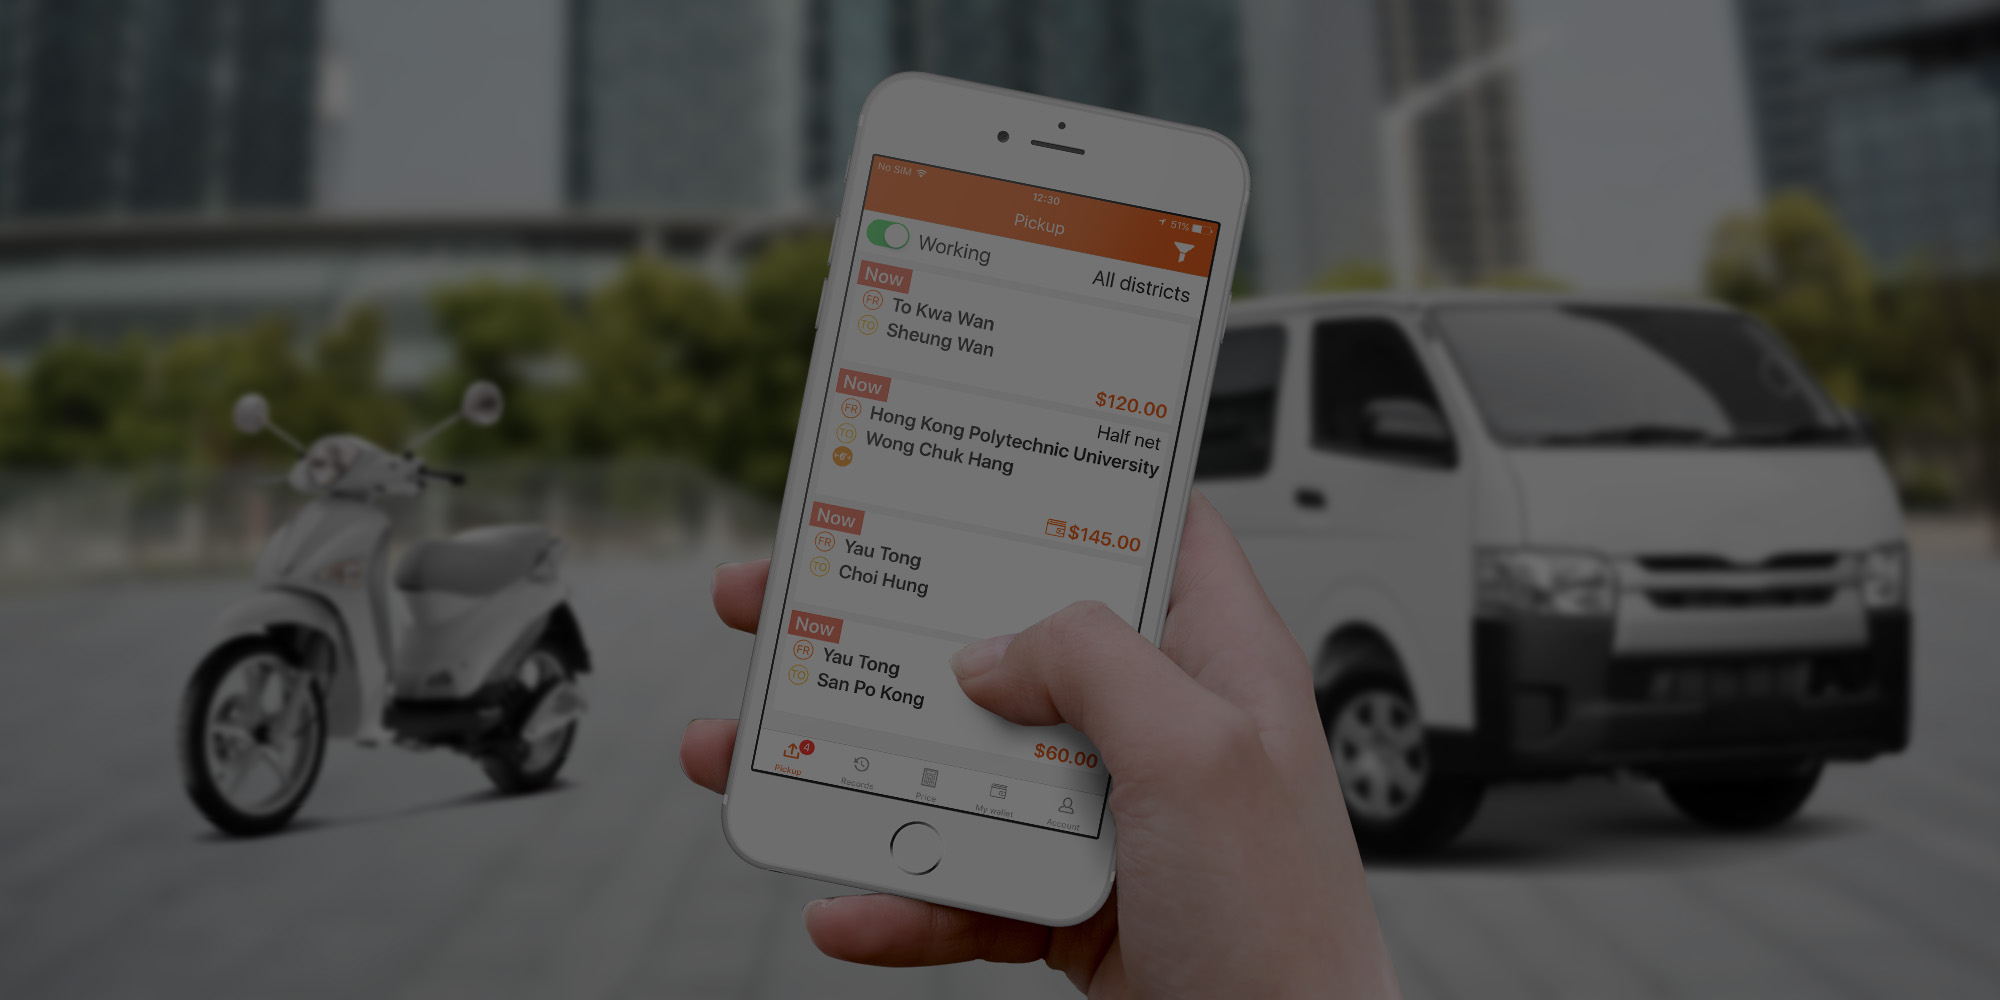 Lalamove Advertisement Become a driver and drive with Lalamove